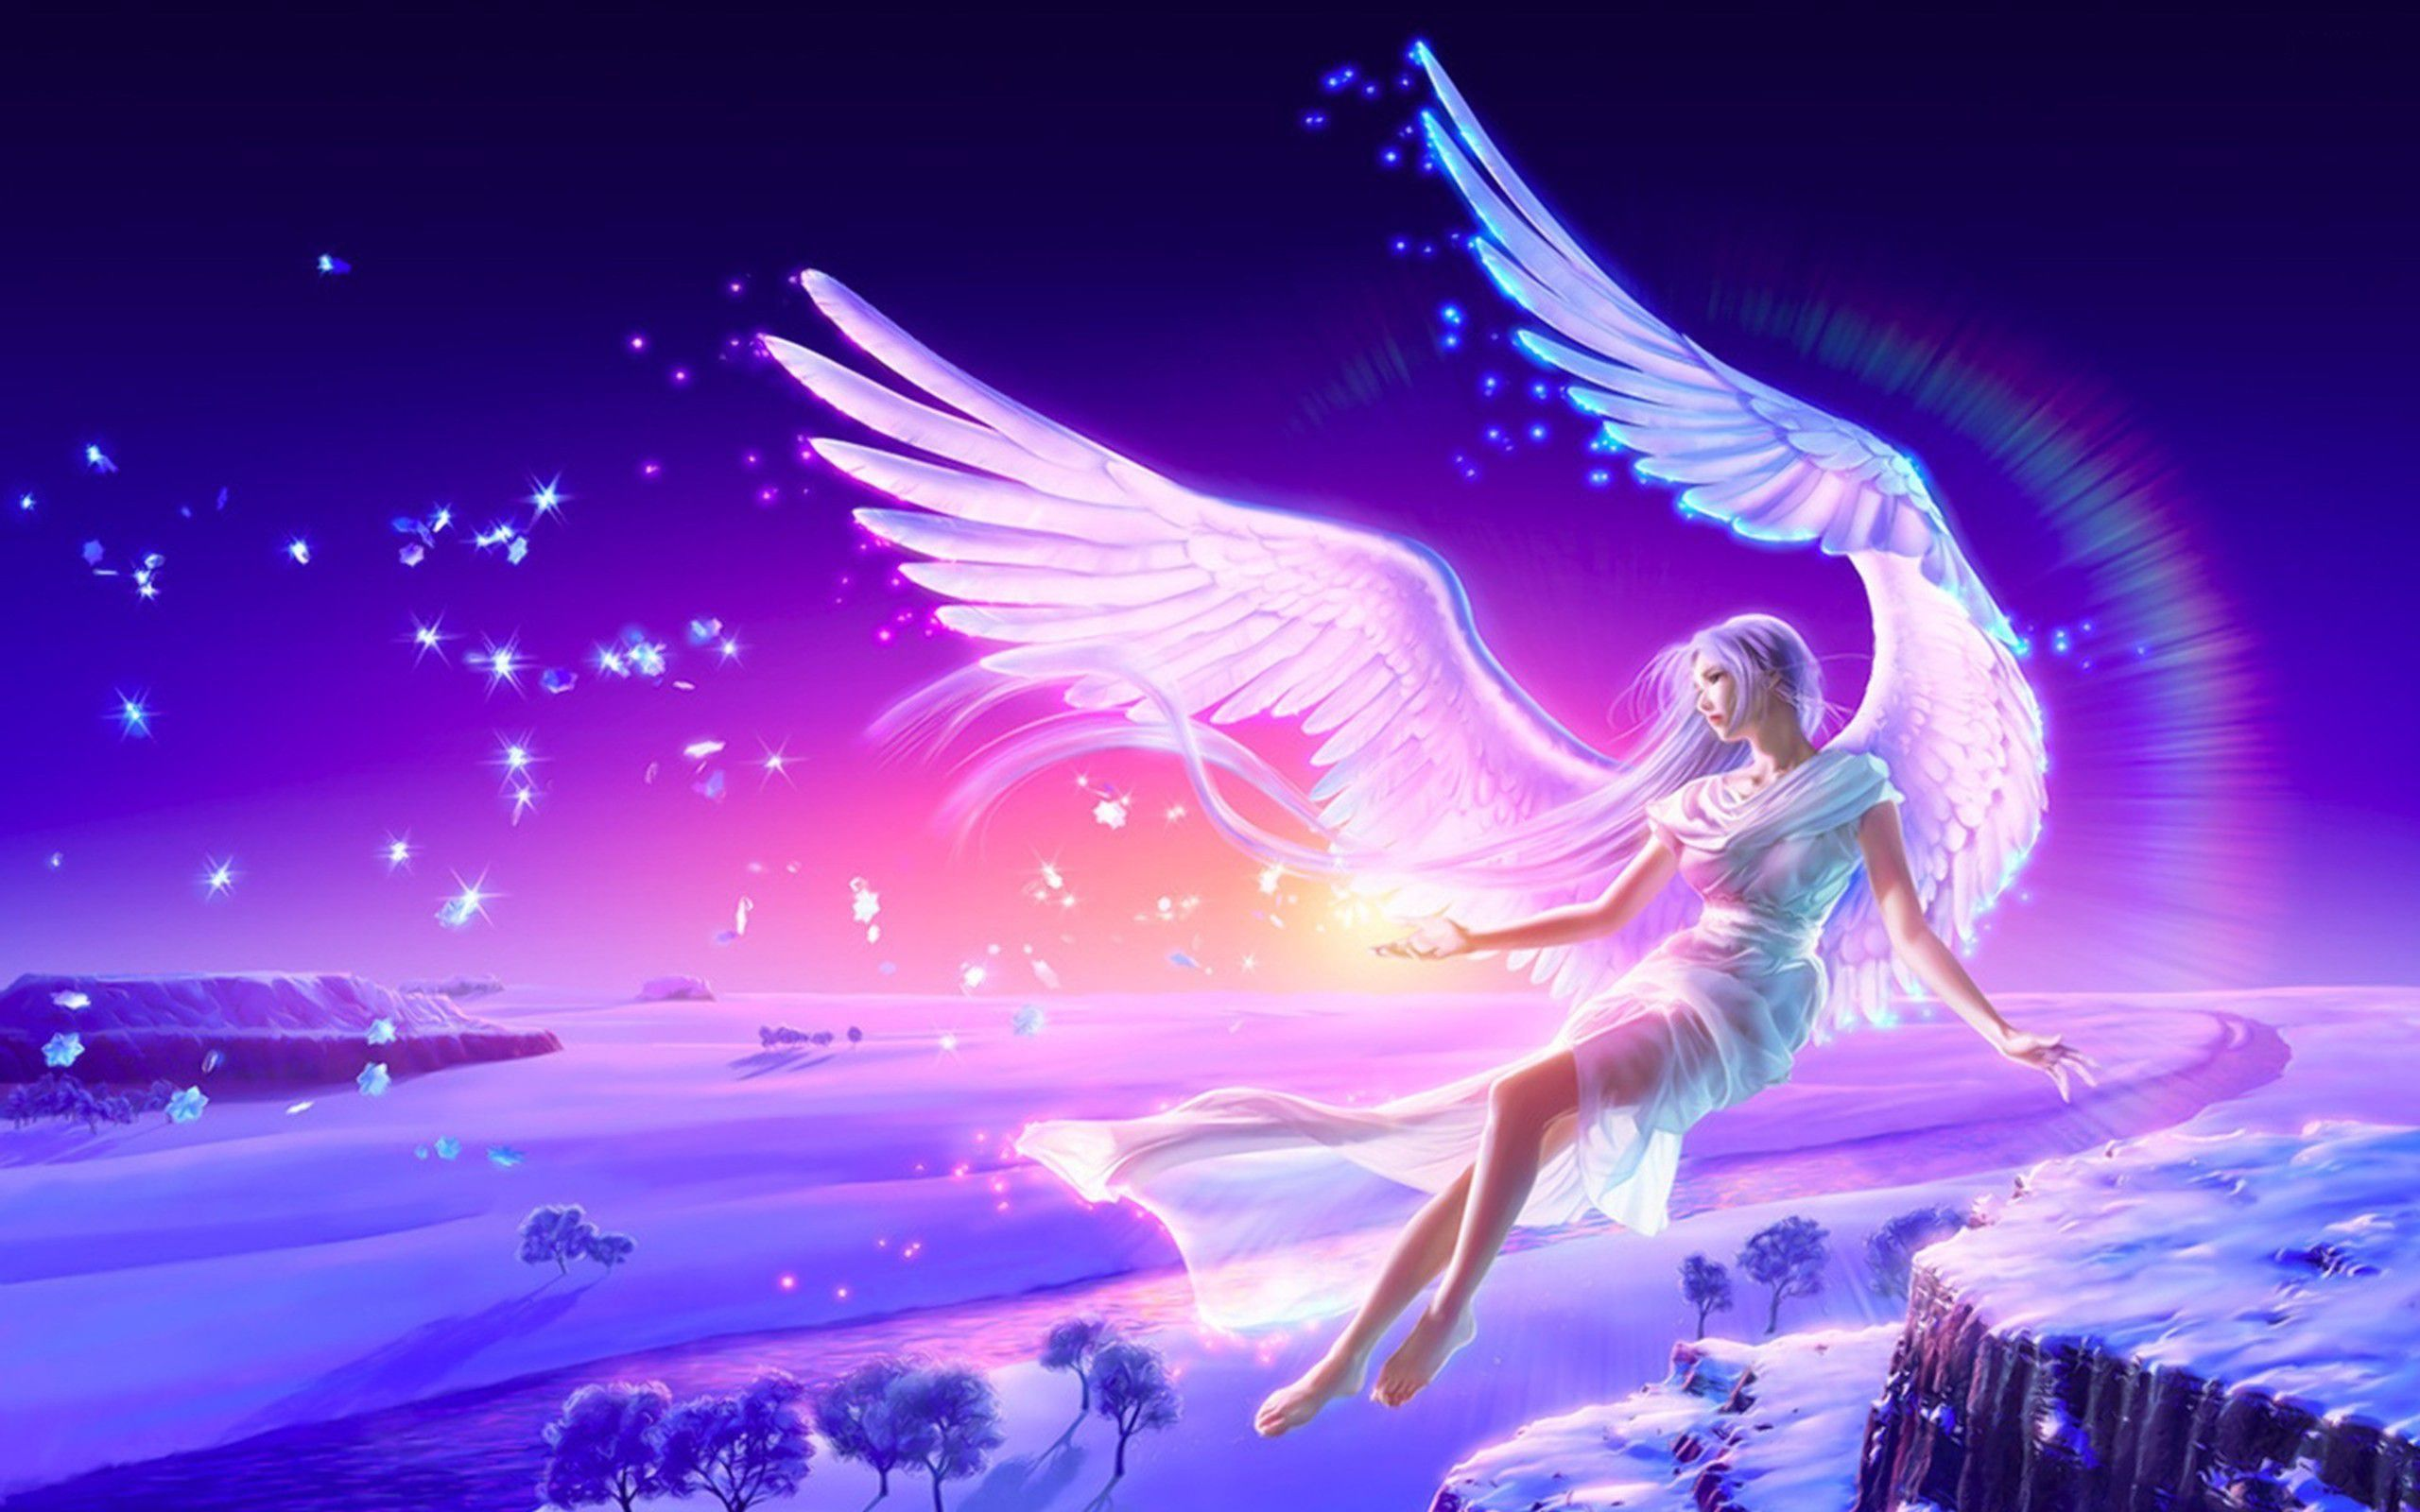 Anime angels wallpapers new anime angel full hd - High quality anime pictures ...